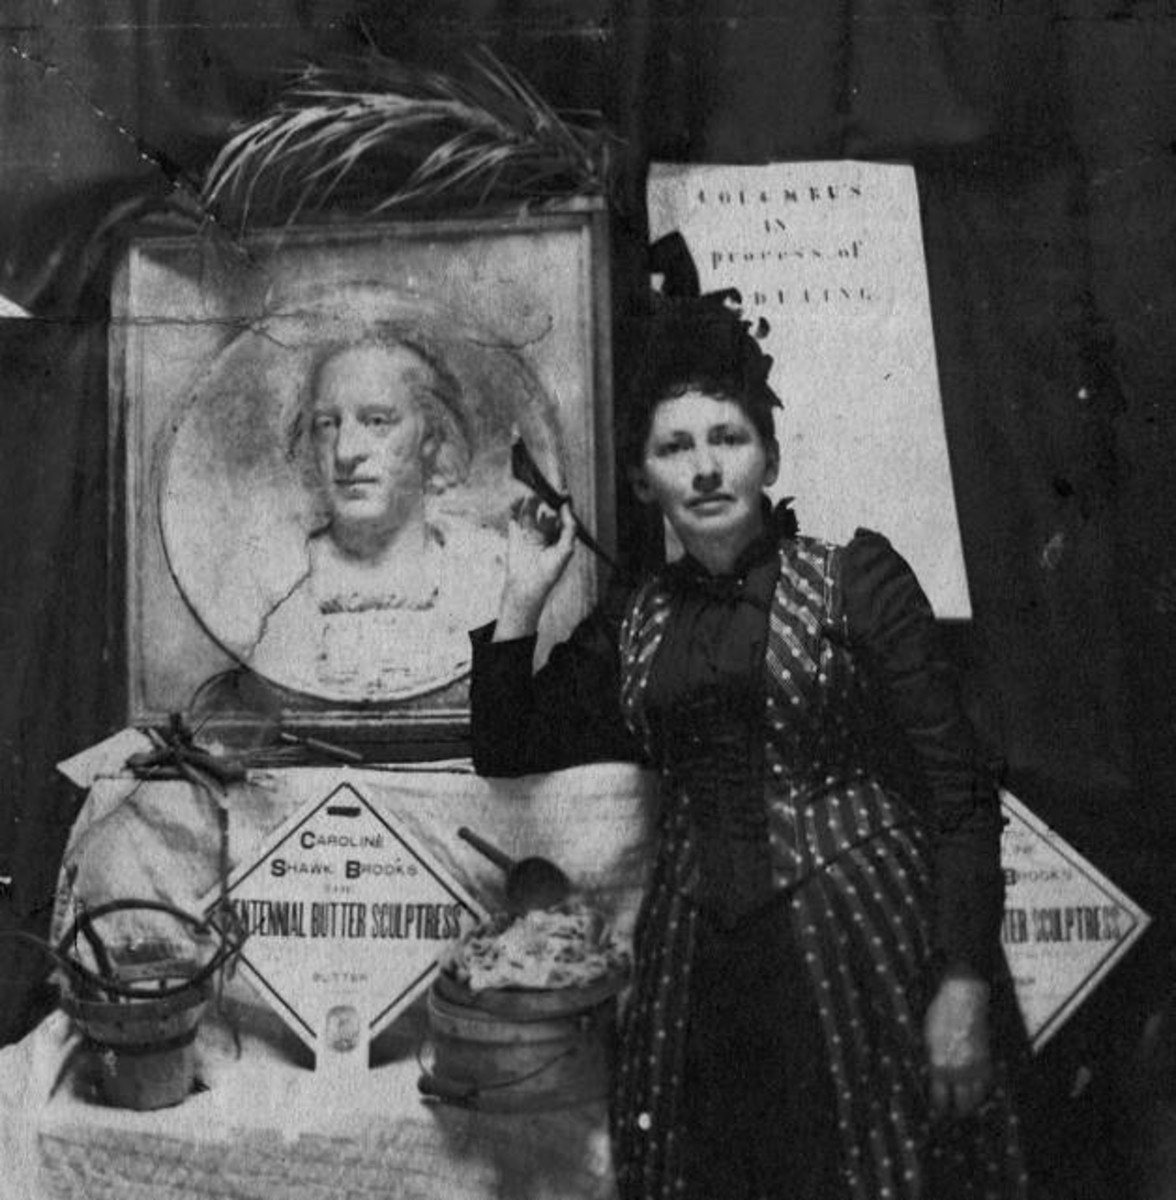 Caroline S. Brooks with a butter sculpture bas-relief of Columbus that she created for the 1893 Columbian Exposition in Chicago. She holds a butter paddle, one of her standard tools.